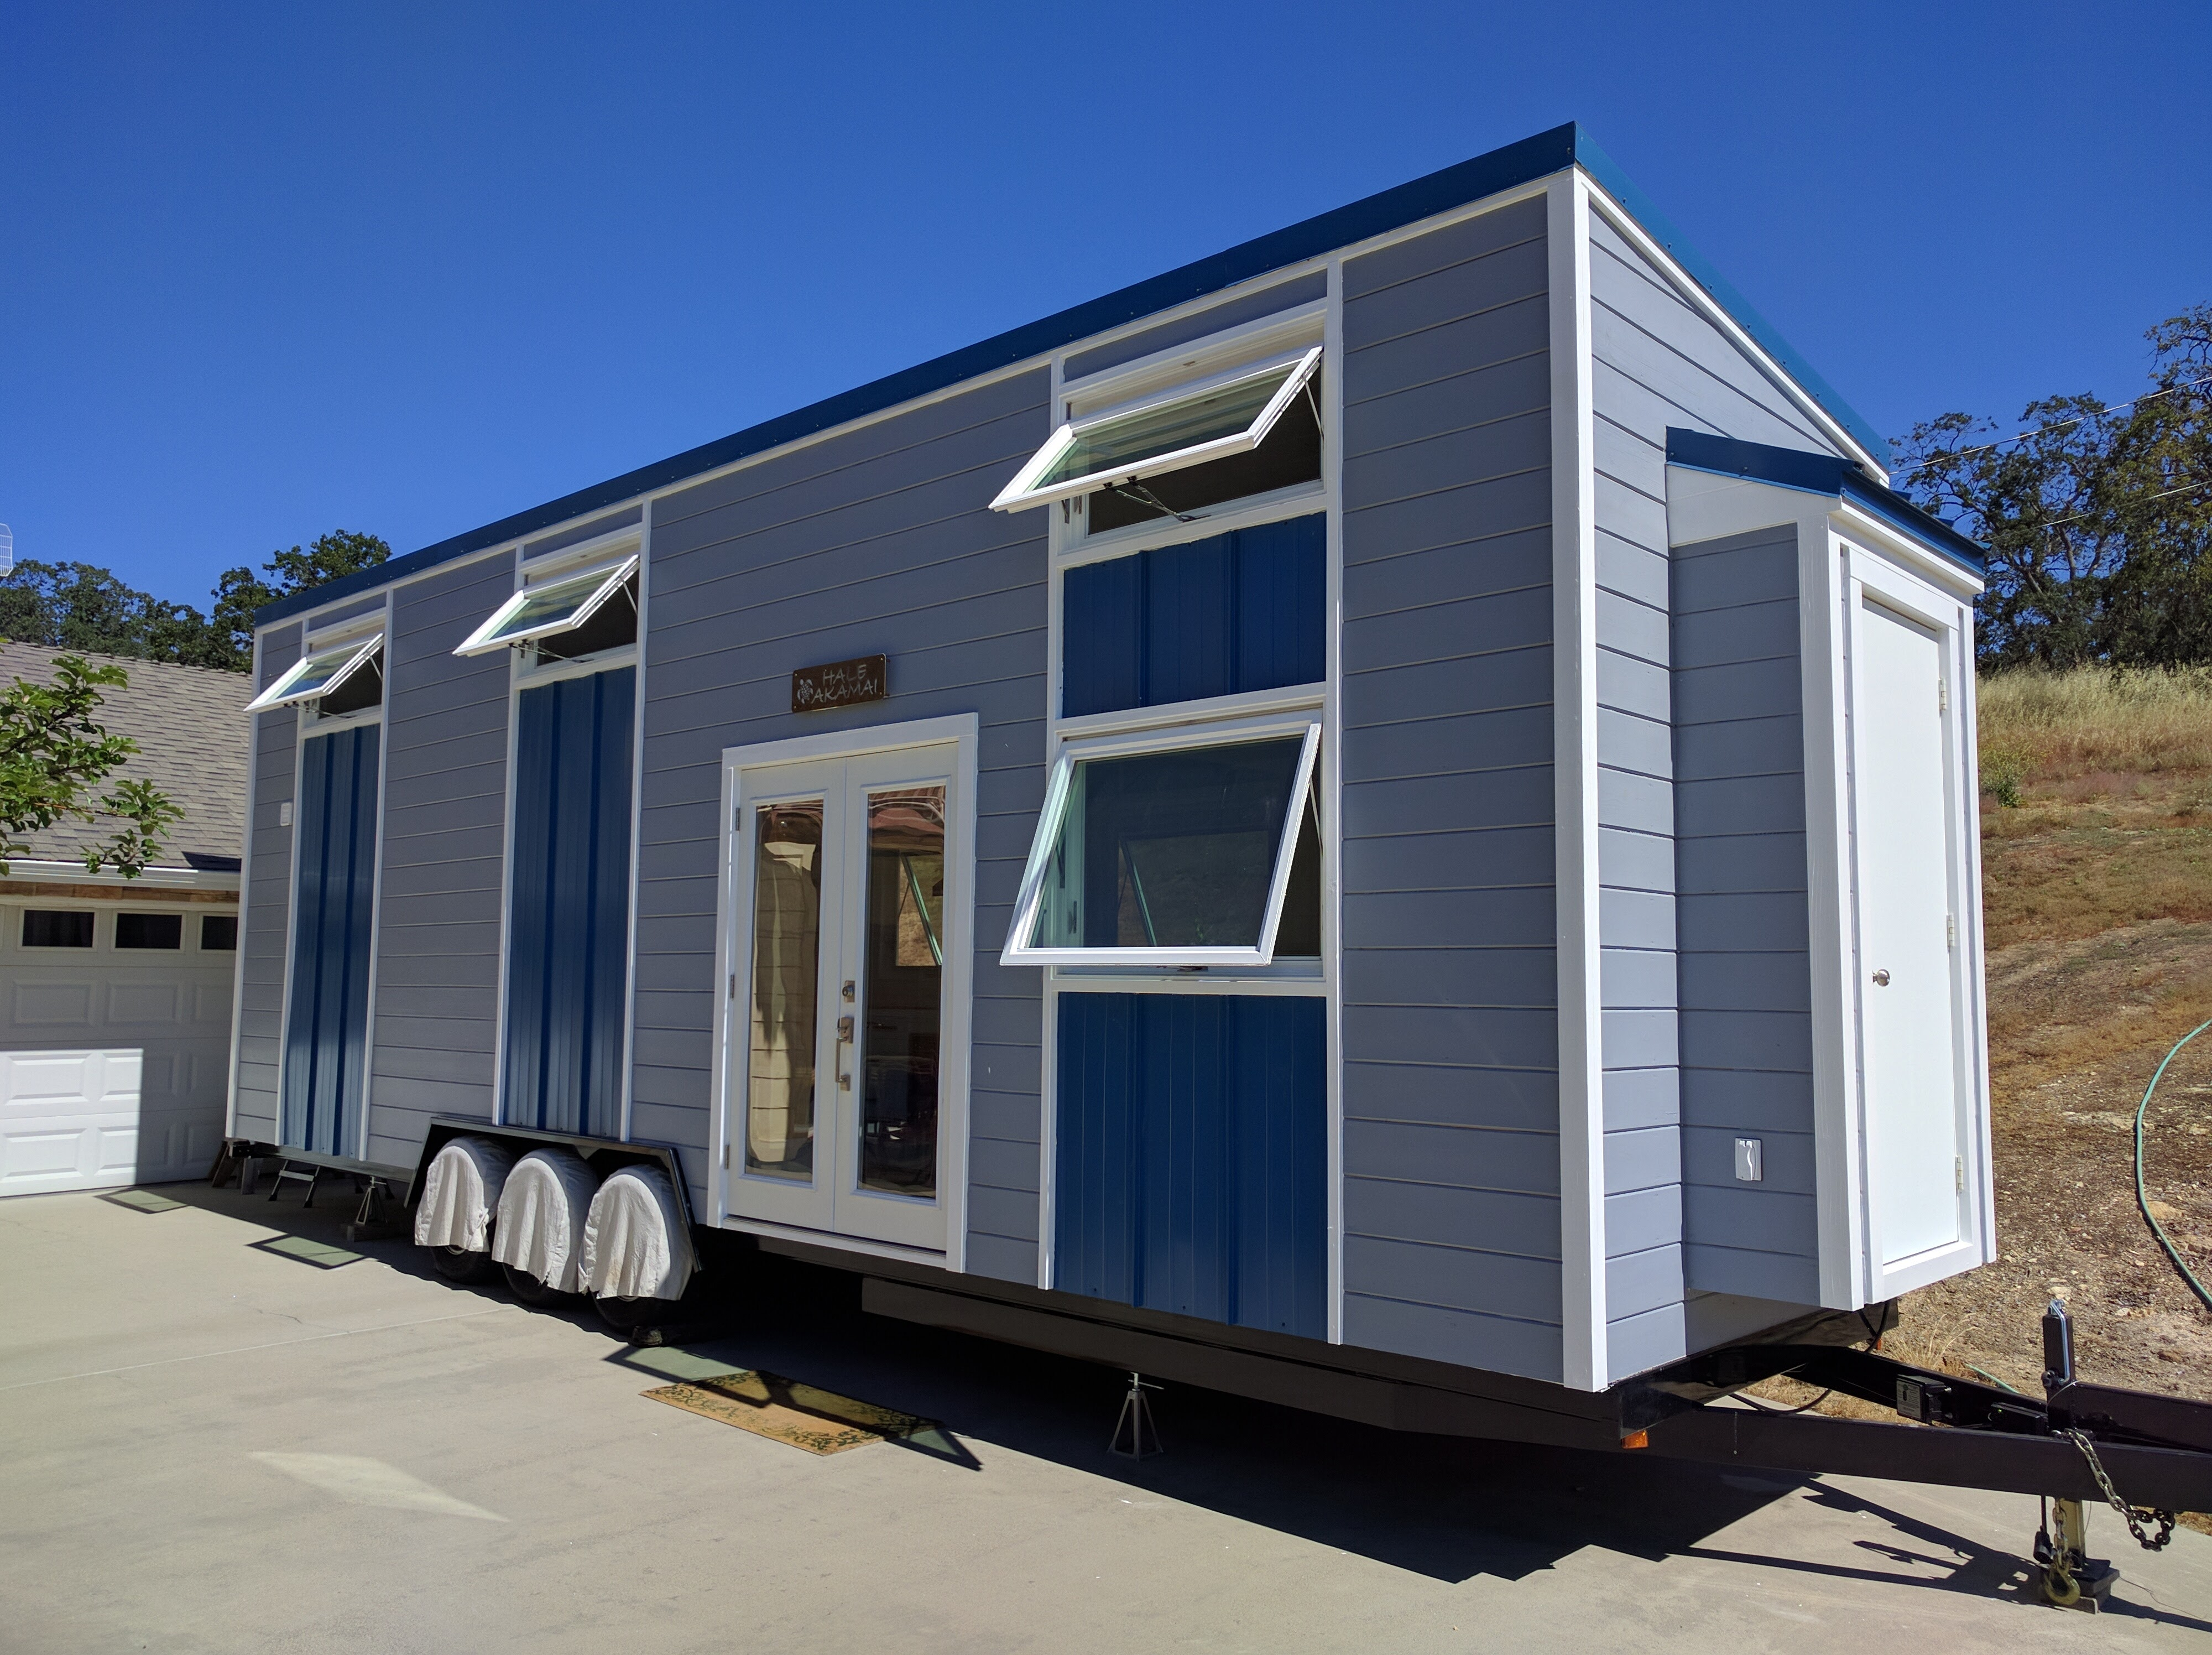 Father and son build modern tiny house Modern tiny homes on wheels